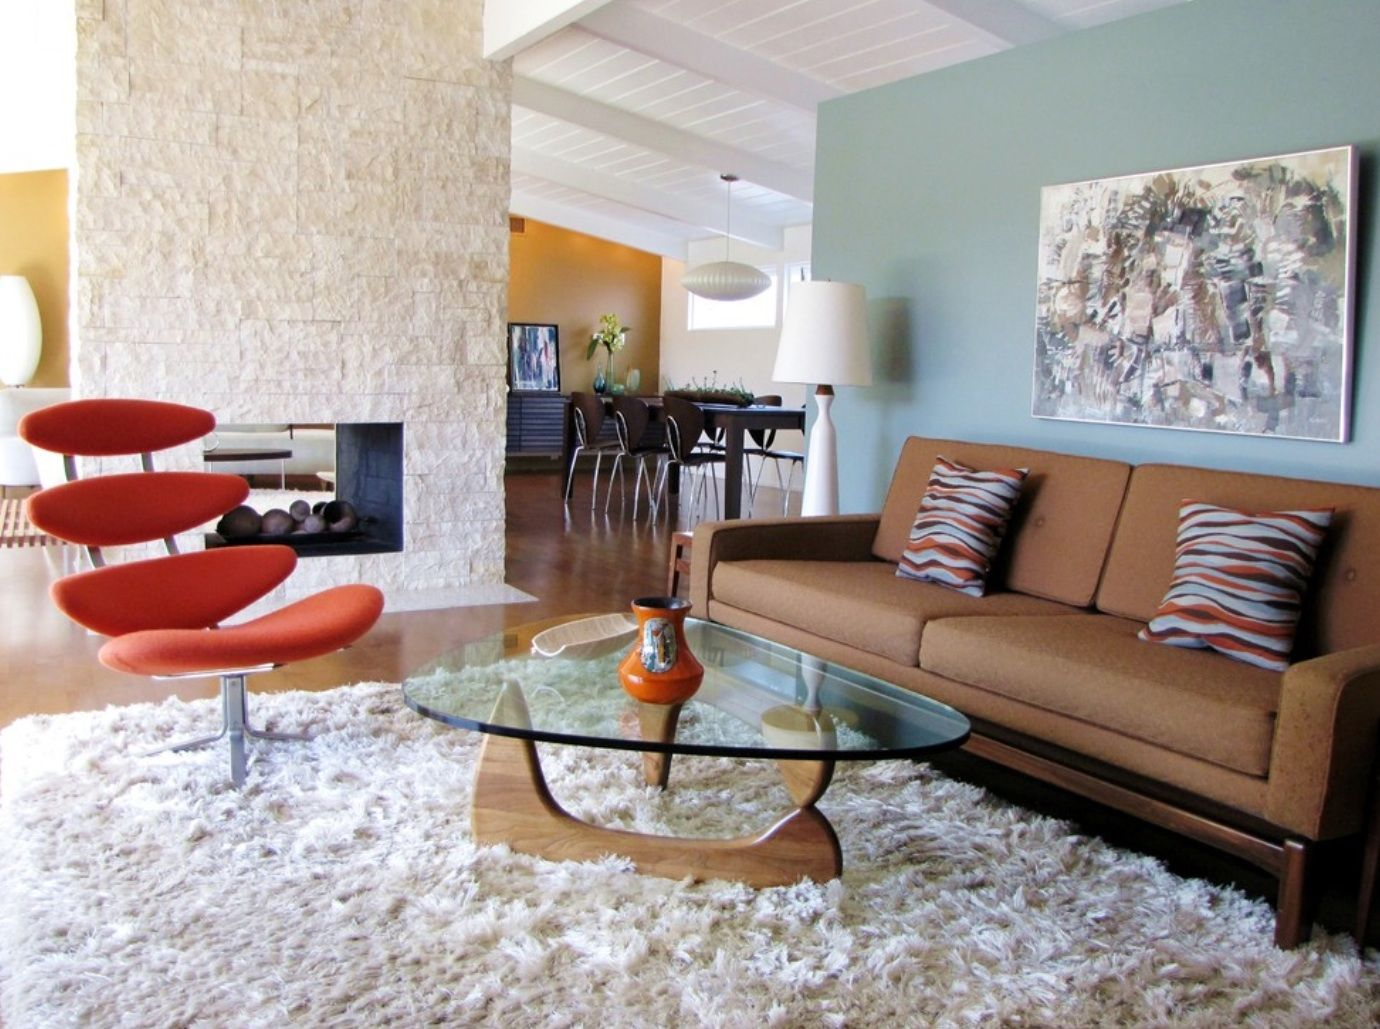 Mid Century Modern Room Ideas mid century modern living room awesome ideas | a1houston